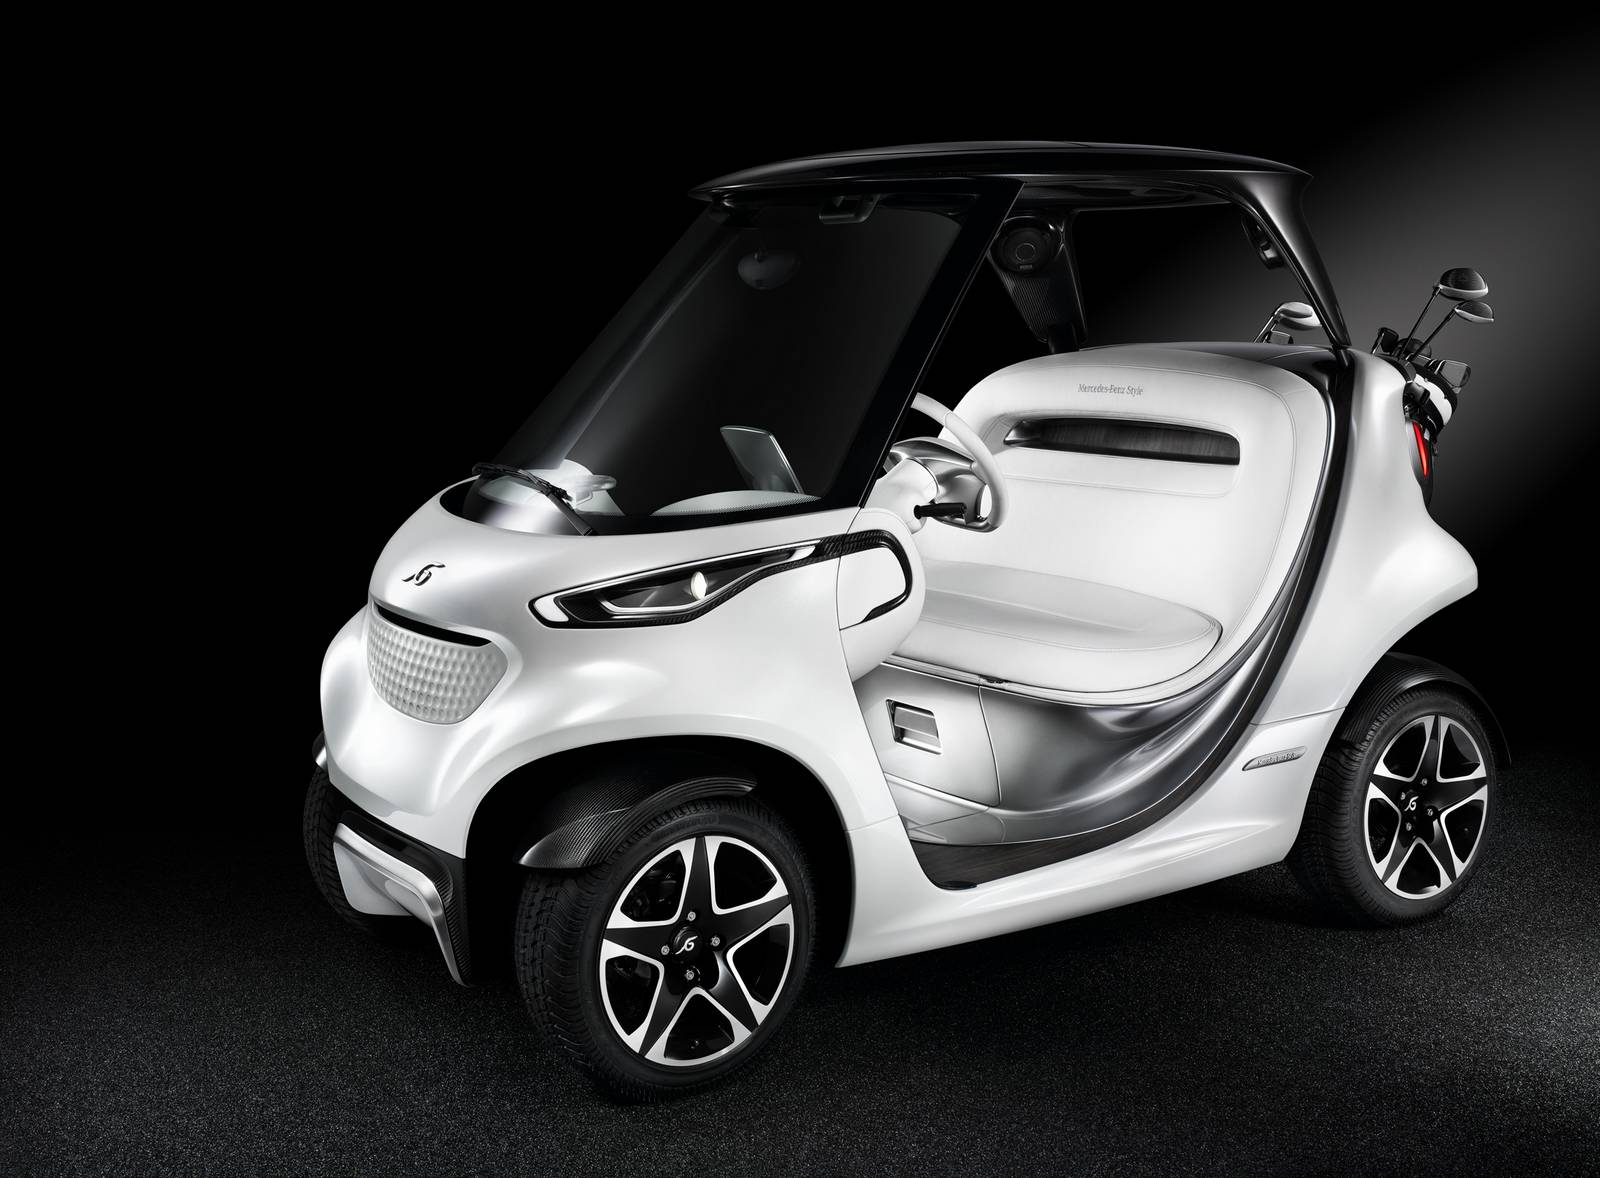 mercedes benz style edition garia golf car review gtspirit. Black Bedroom Furniture Sets. Home Design Ideas